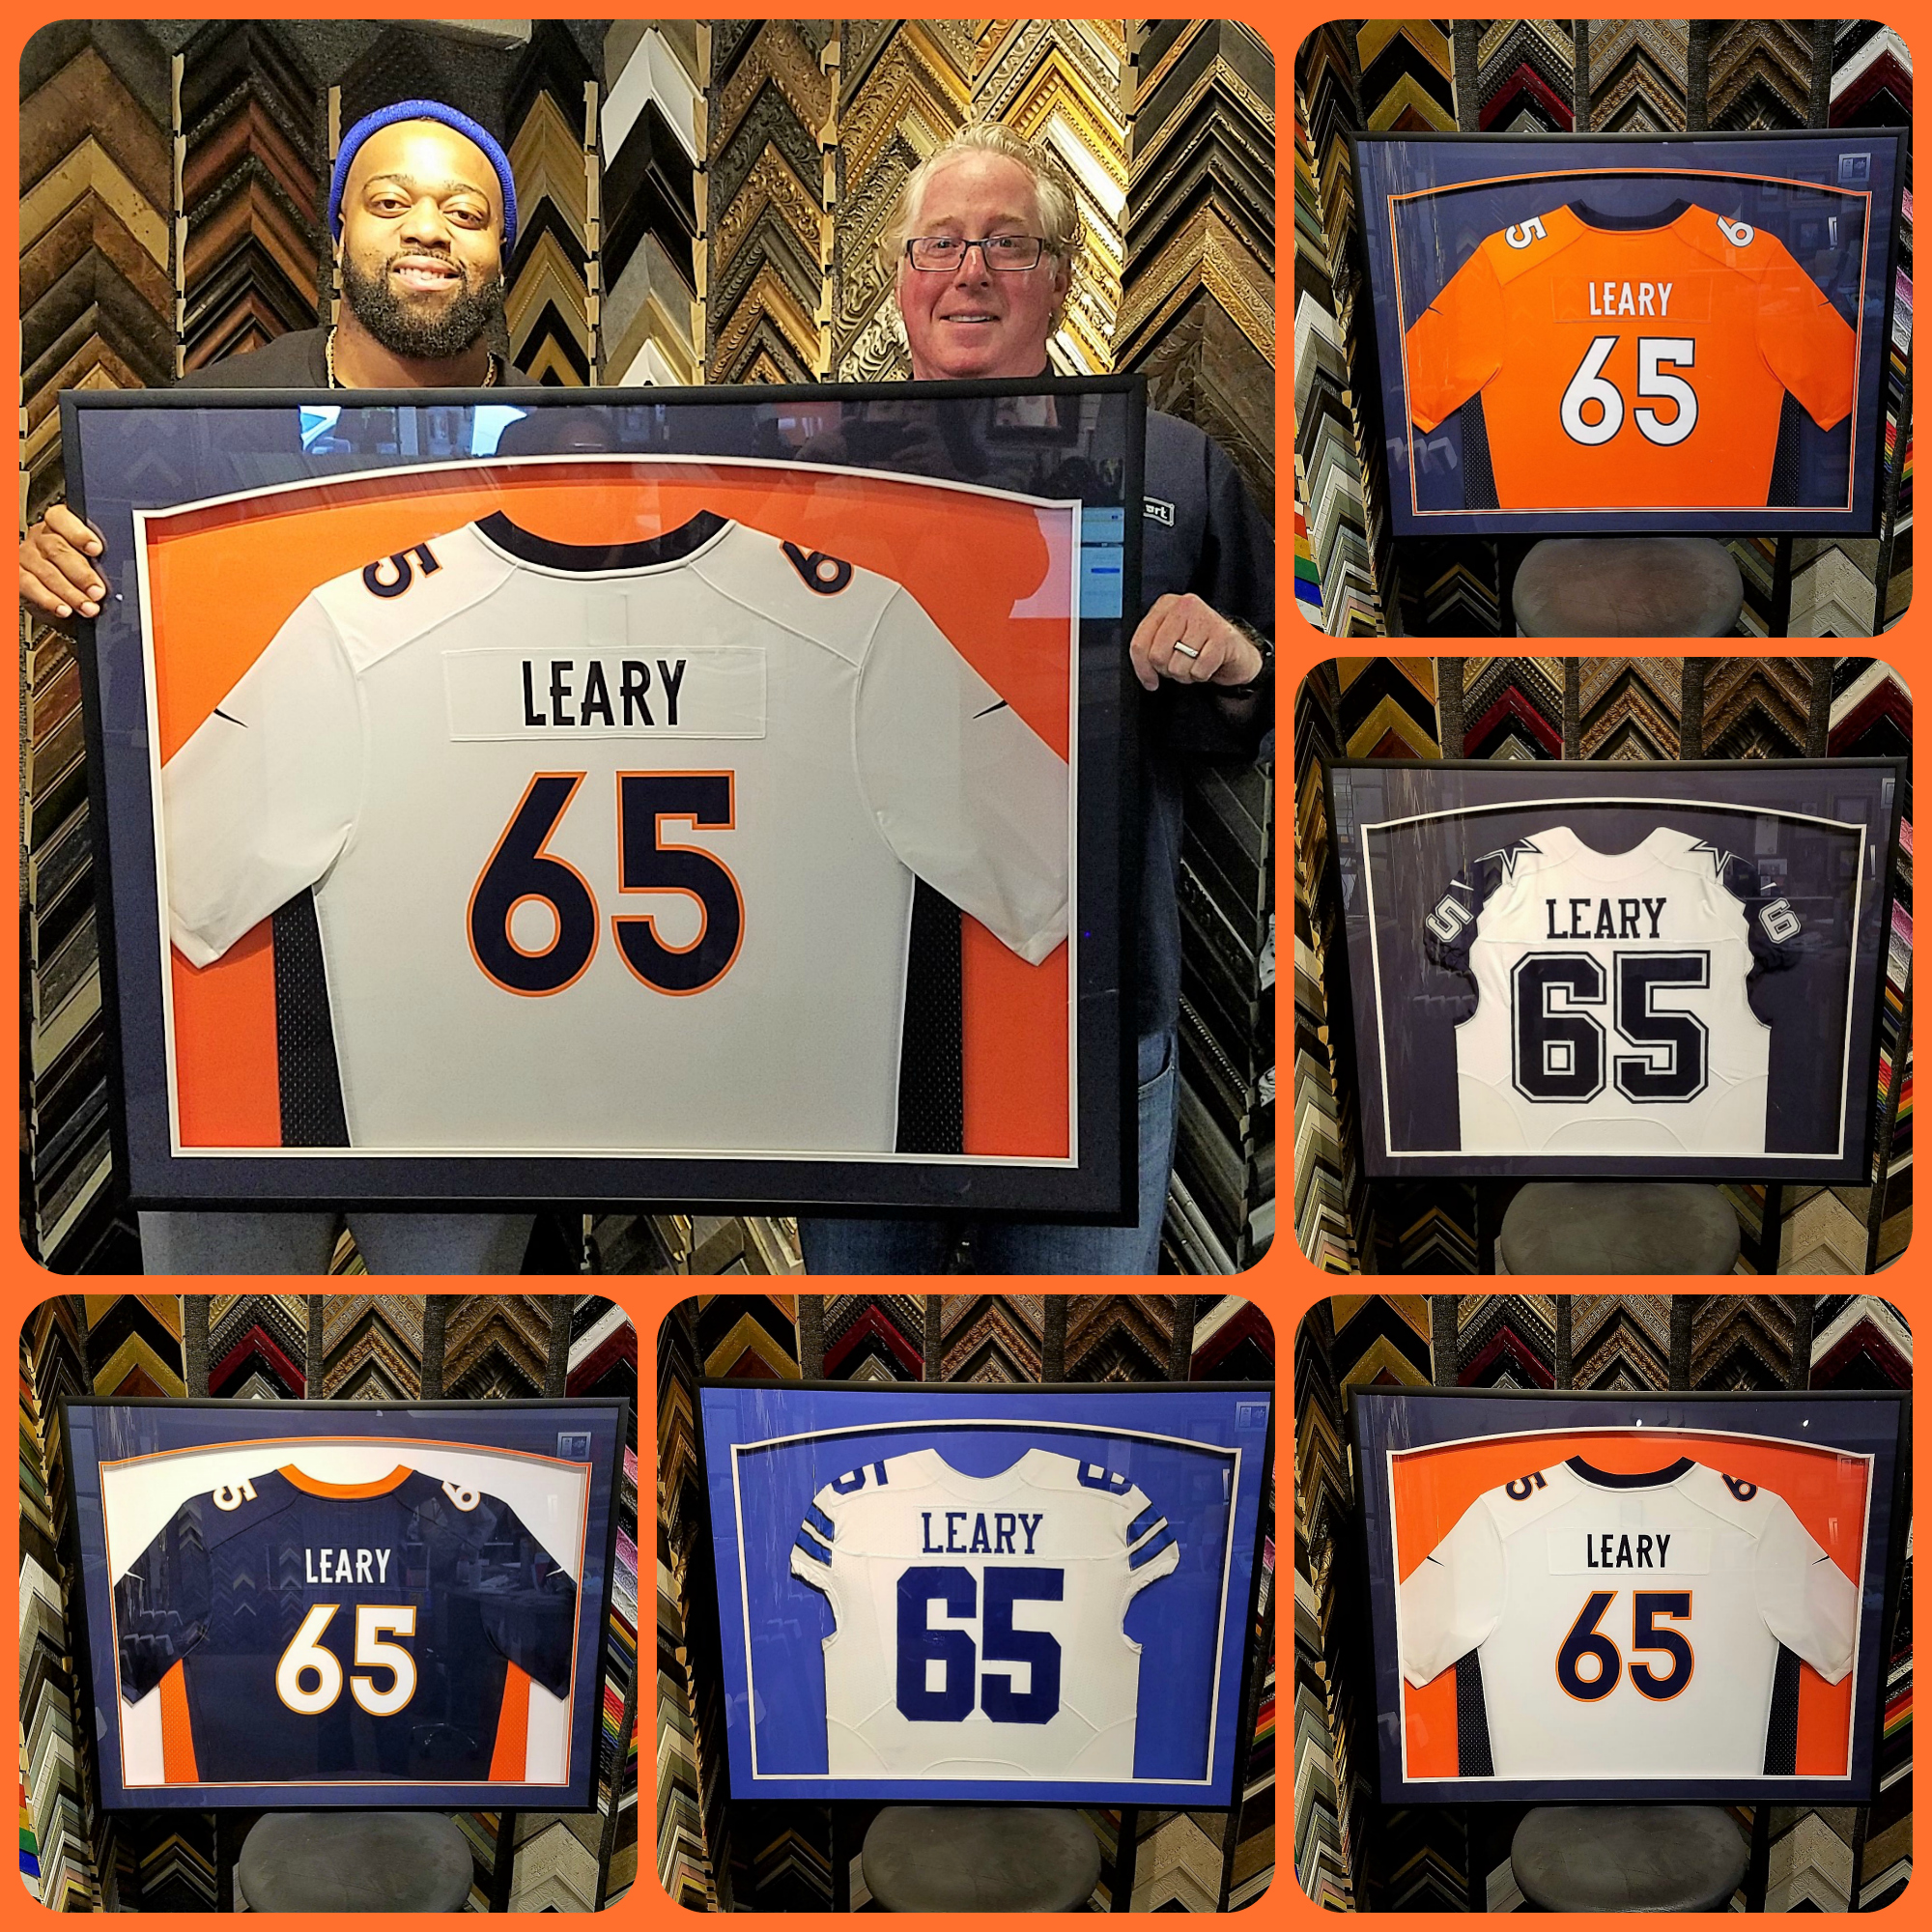 Honored to frame for #65